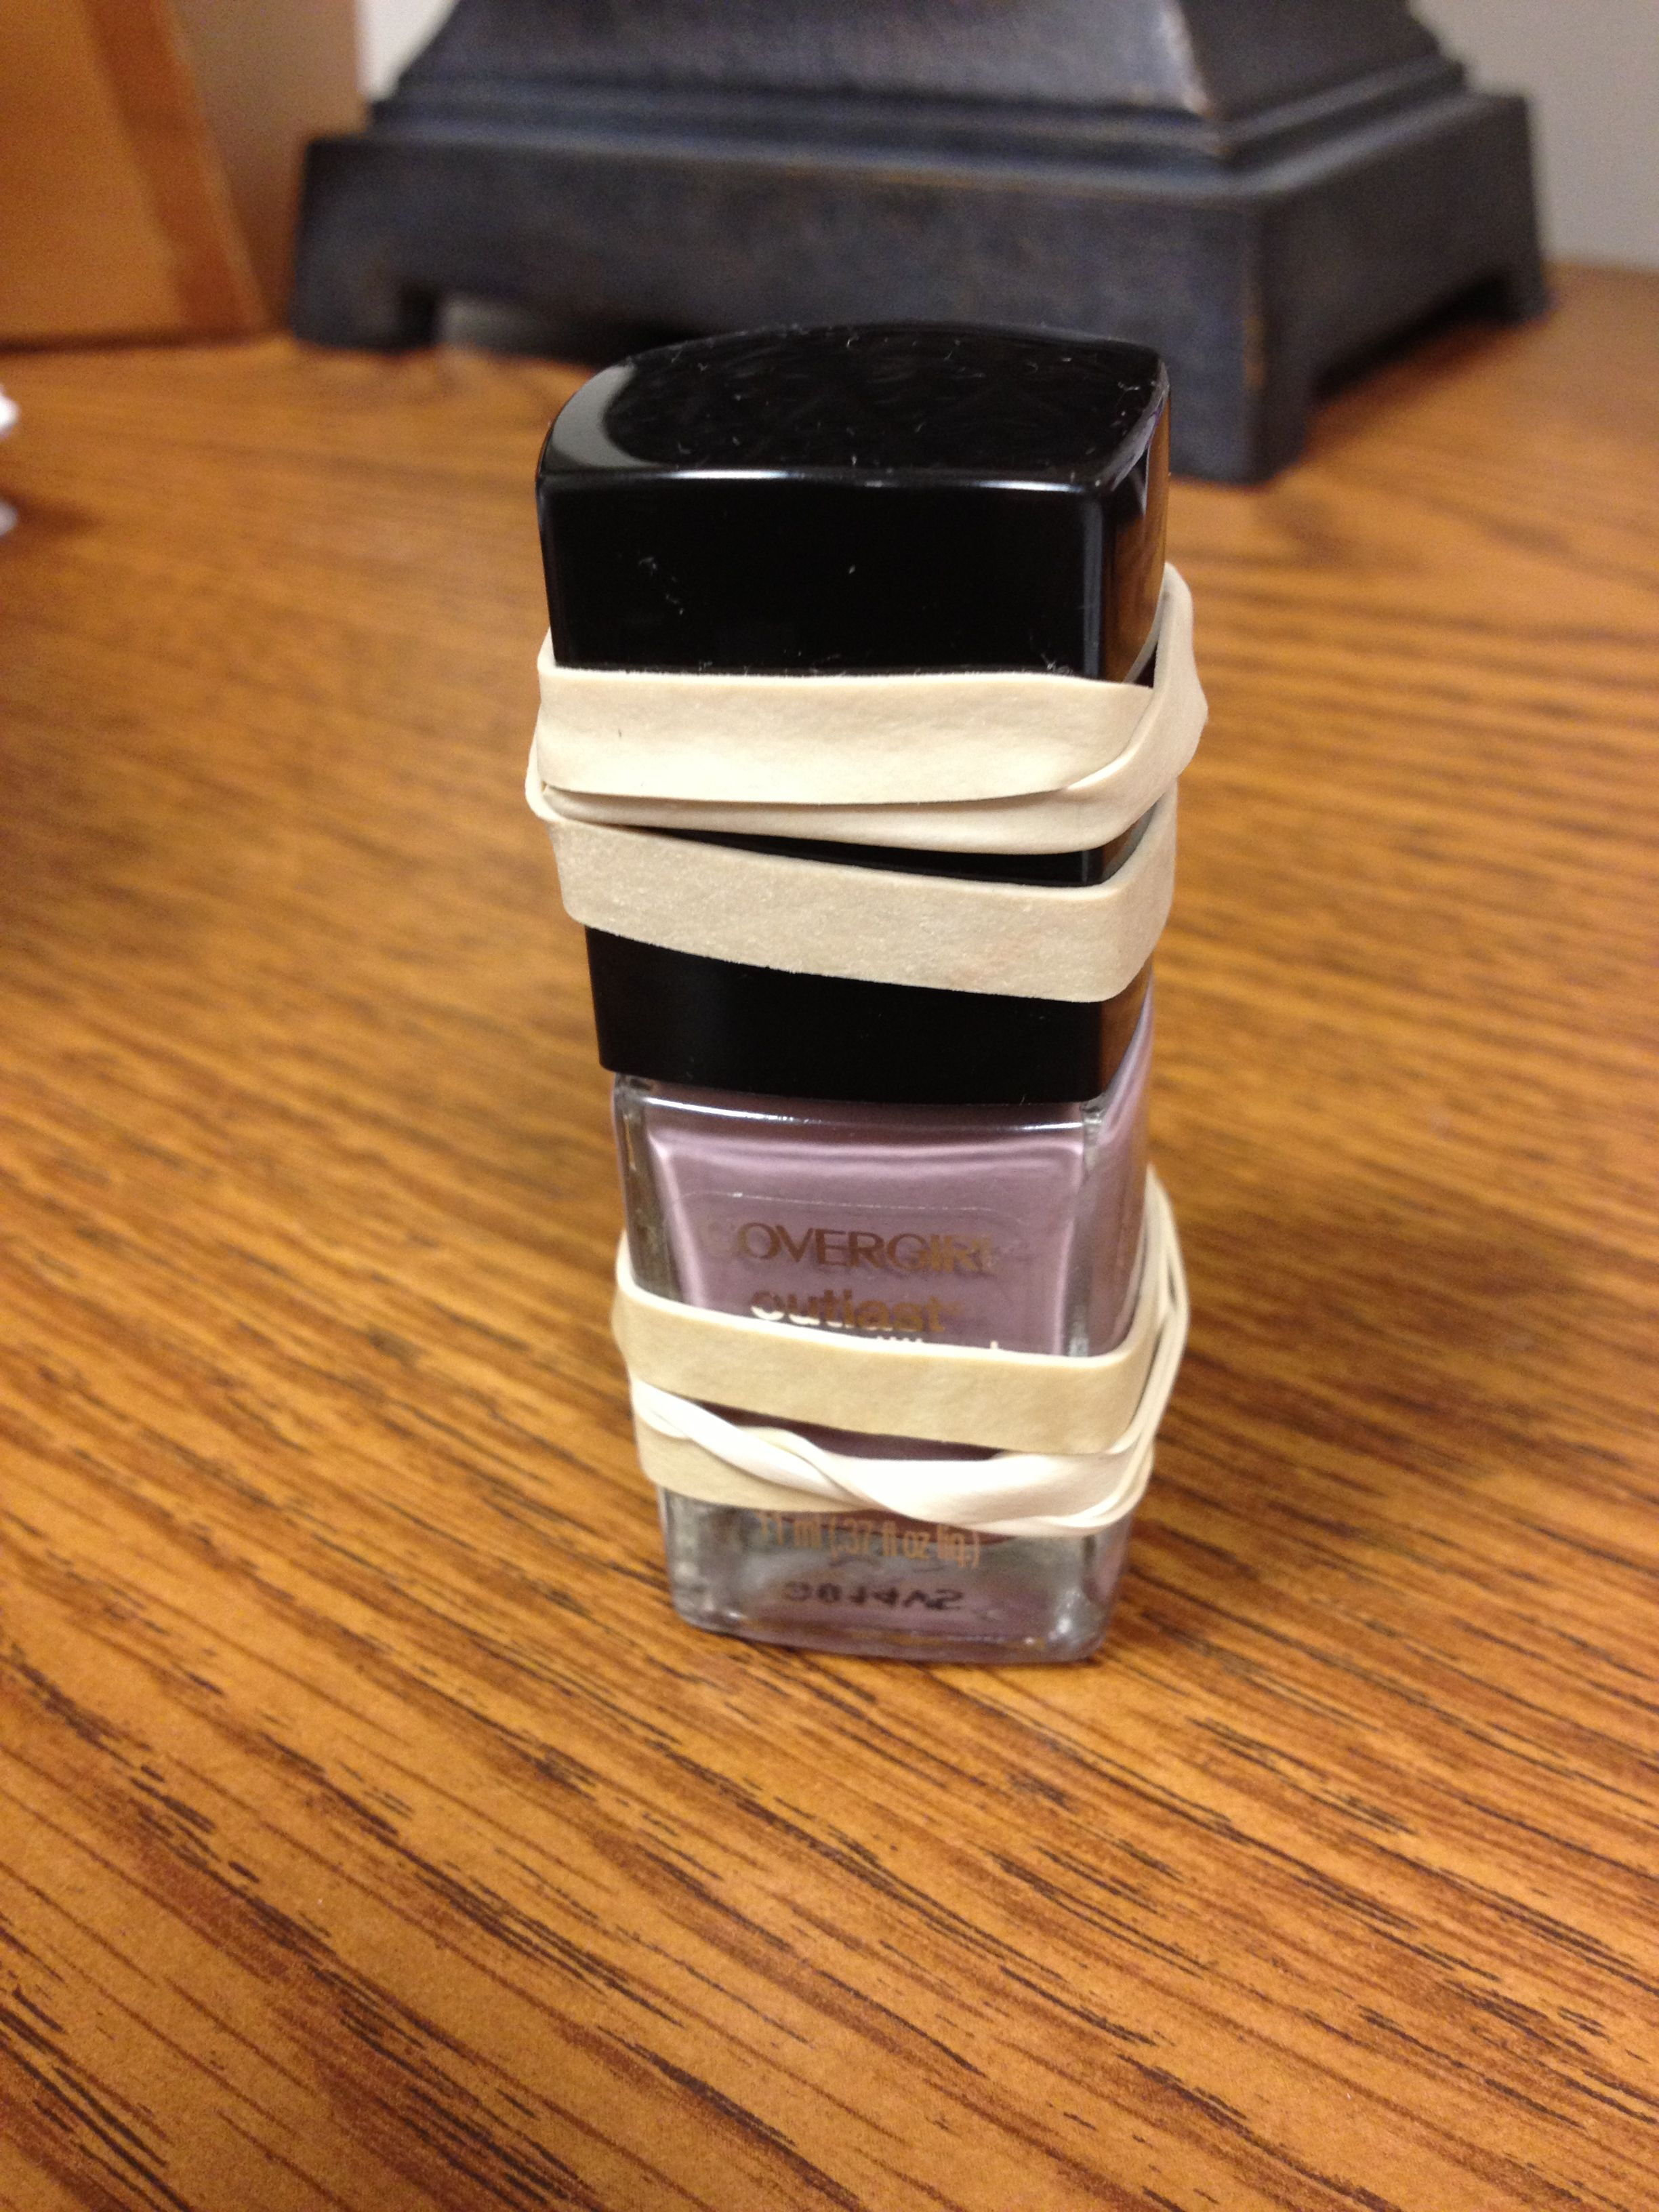 For those tricky polishes that don't want to open...put a rubber band around it for grip! Works like a charm!